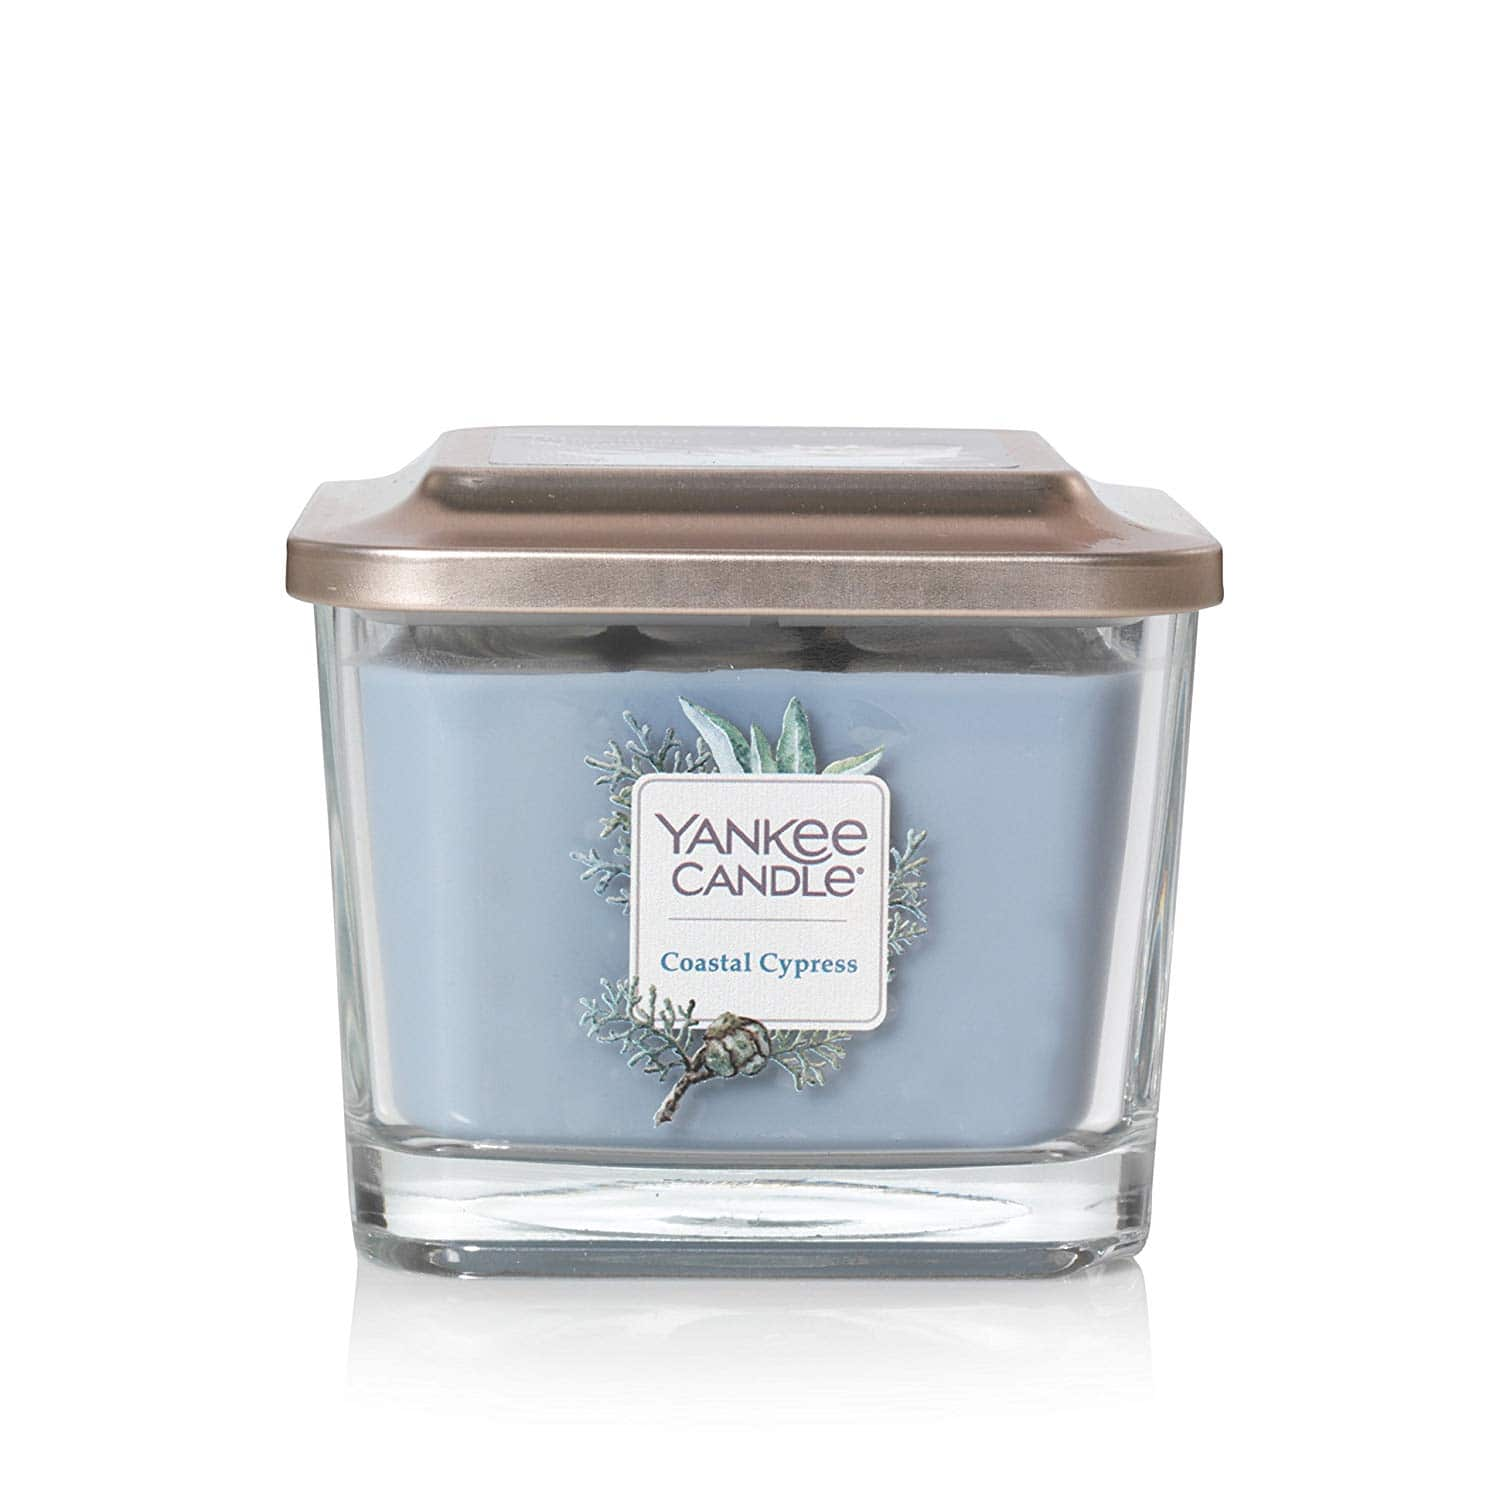 Yankee Candle Company Elevation Collection with Platform Lid, Medium 3-Wick Square Candle | Coastal Cypress [Coastal Cypress] for $8